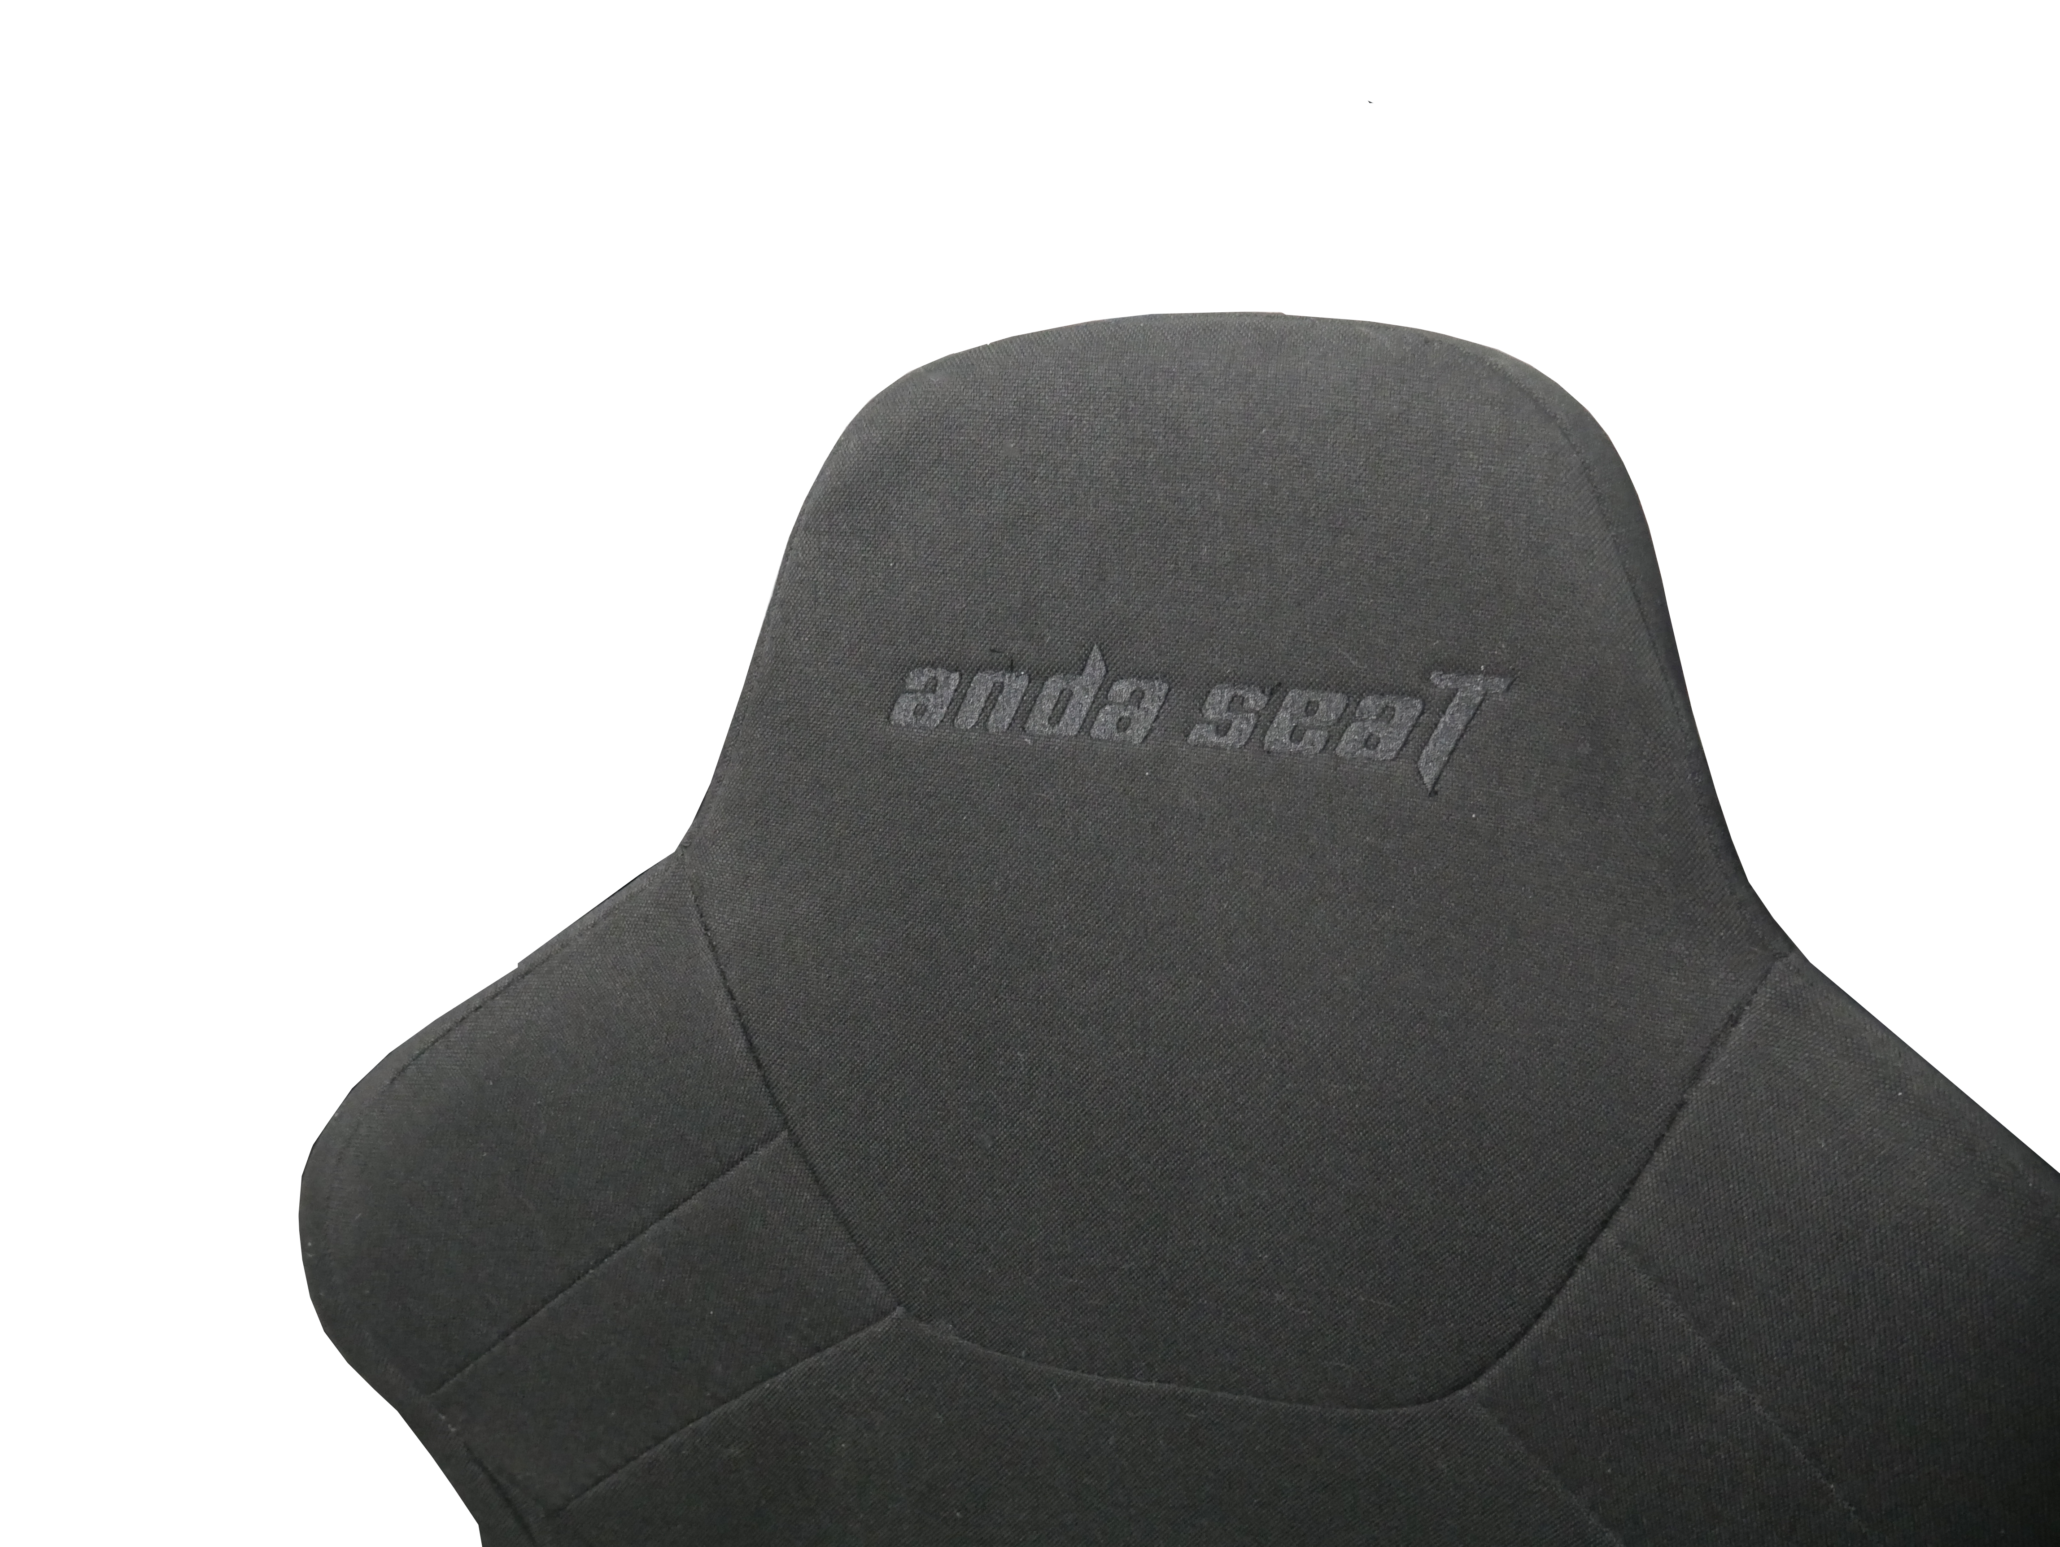 andaseat-front-decal